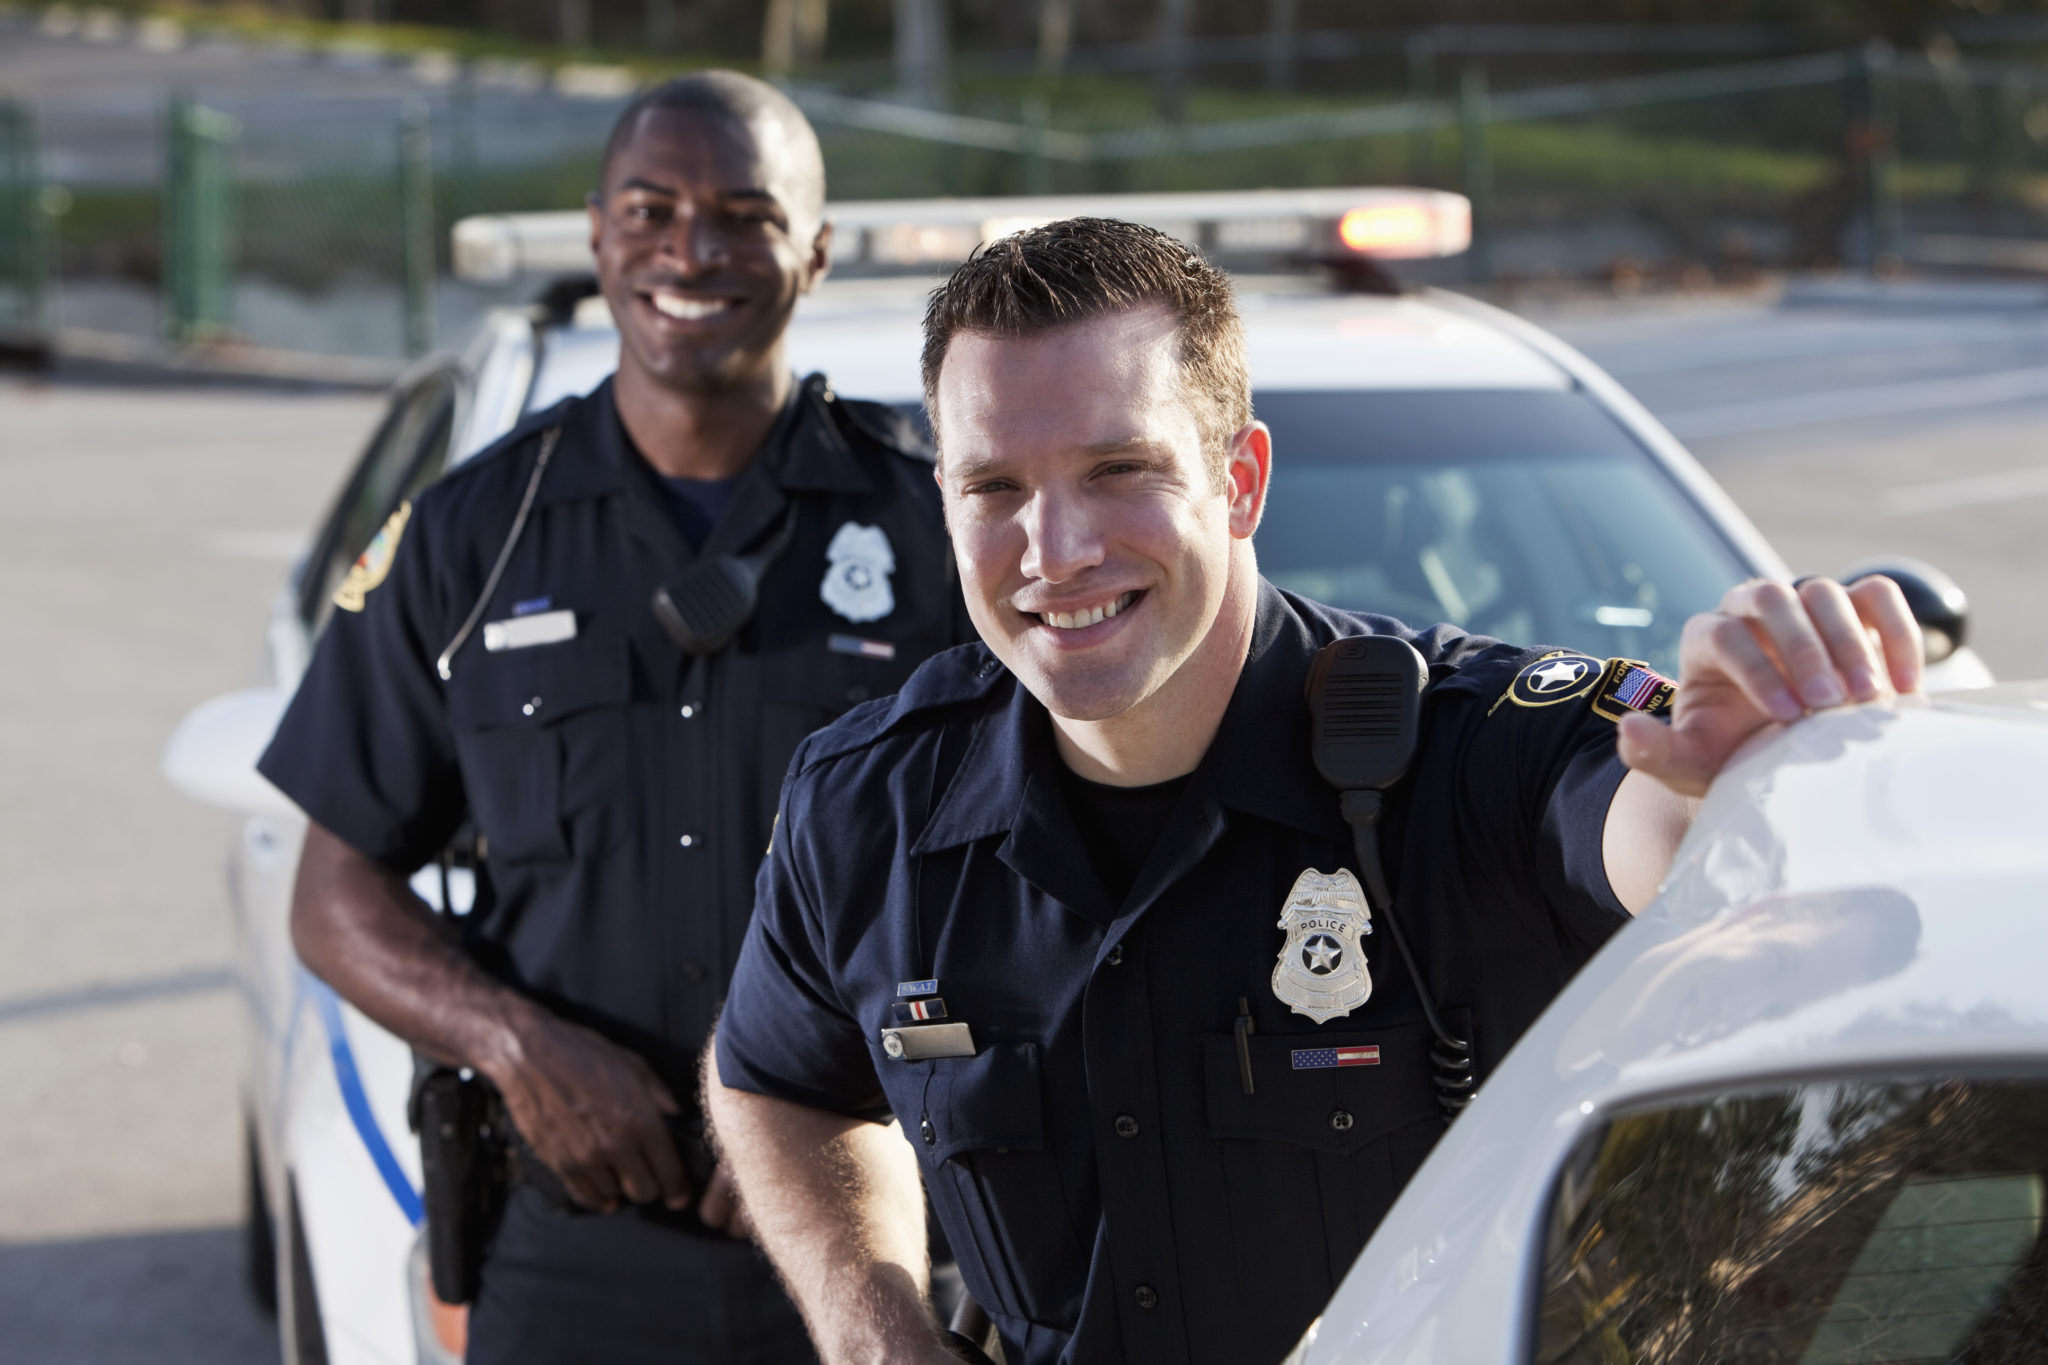 Howell Police Officer Job Opening - POAM | Response to Public Safety Coalition